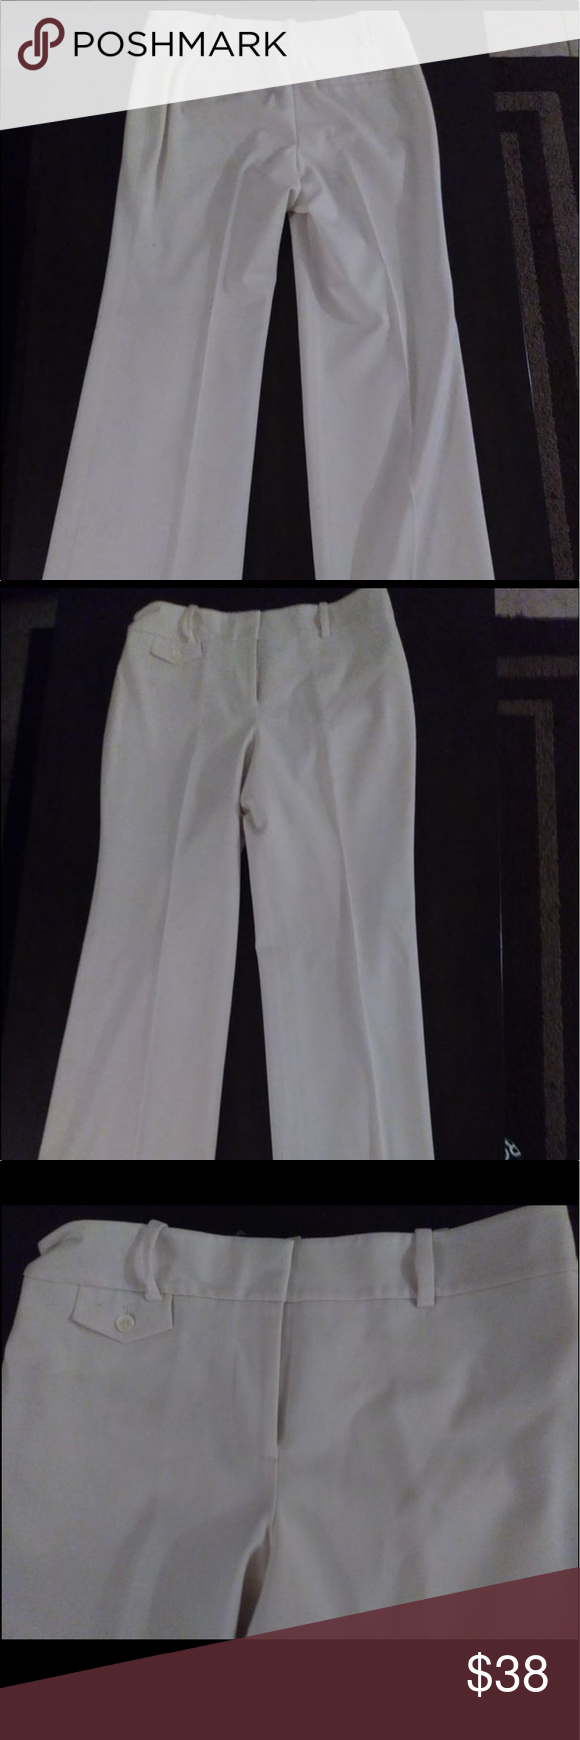 White Ann Taylor Slacks Ann Taylor Signature White Slacks White dress pants size 8 Bundle for extra discounts!!   Comment if you like better pics Ann Taylor Pants Trousers #whiteslacks White Ann Taylor Slacks Ann Taylor Signature White Slacks White dress pants size 8 Bundle for extra discounts!!   Comment if you like better pics Ann Taylor Pants Trousers #whiteslacks